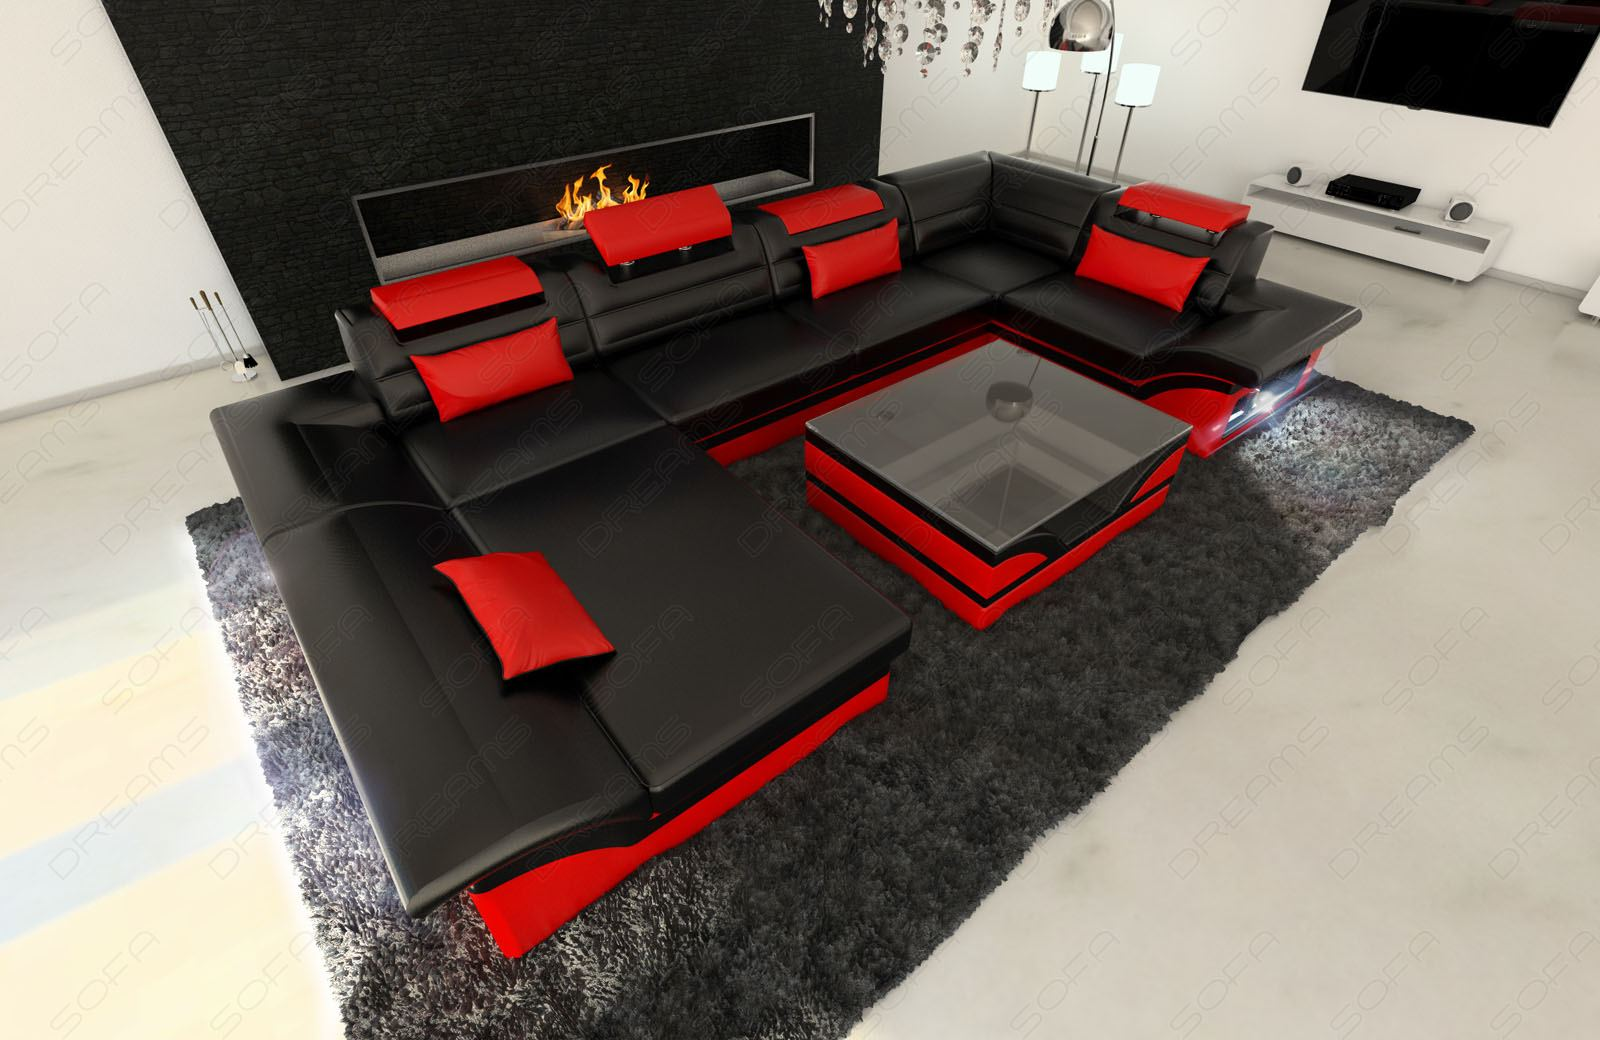 black and red leather sofa how to stop a puppy jumping on big sectional atlanta with led lights u shape couch upholstery fabric